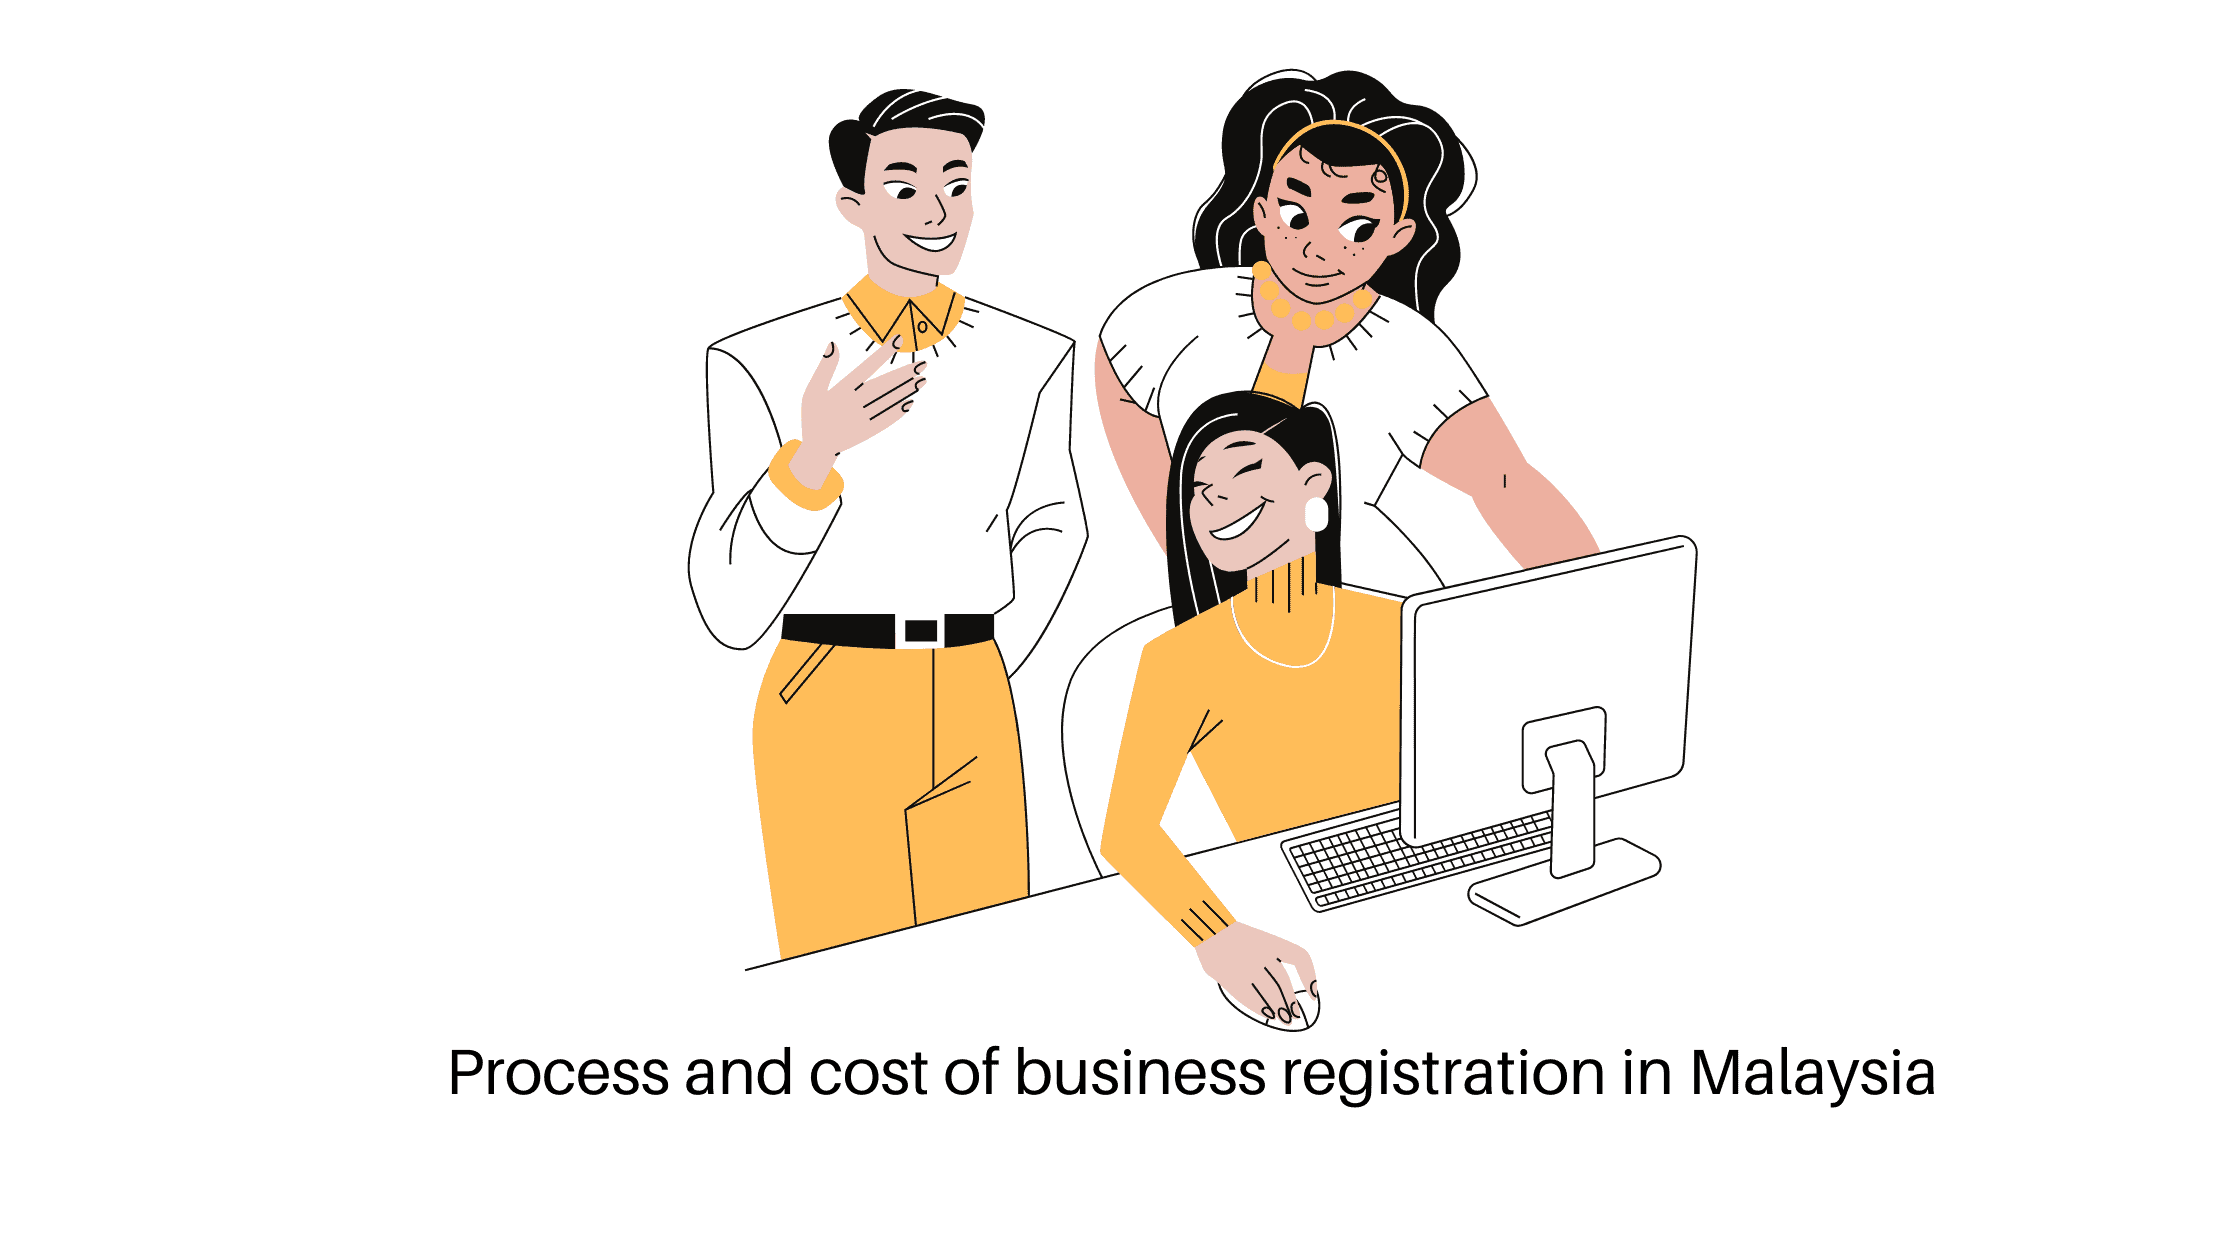 Business registration fees in Malaysia